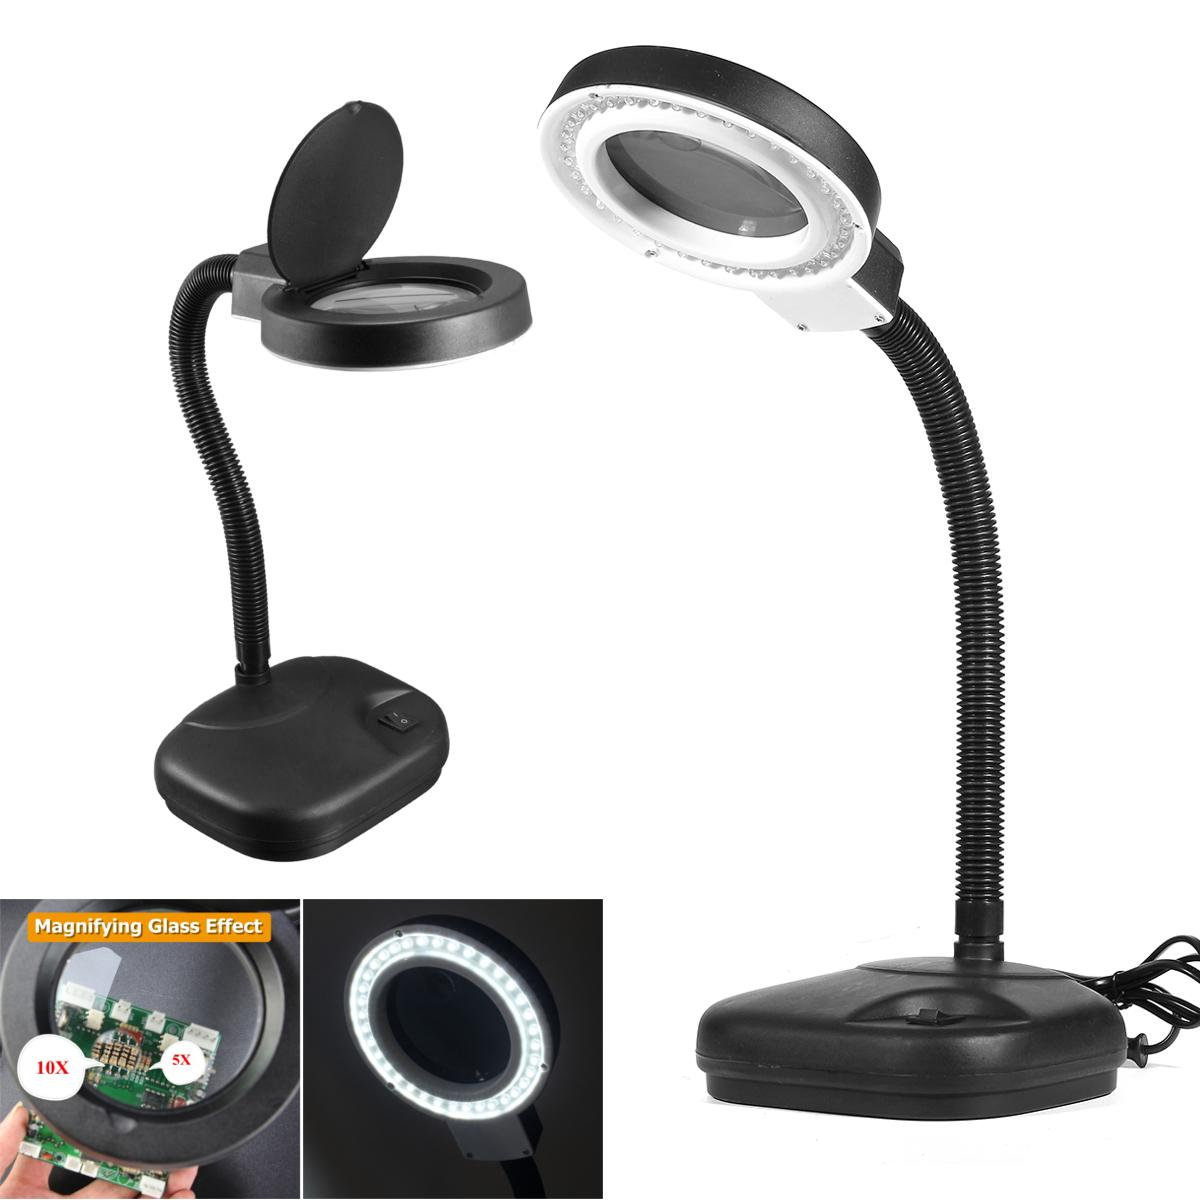 2018 Led Desk Magnifier Lamp Light Crafts Glass Lens 5x 10x Magnifying Desktop Loupe Repair Tools 40 Leds Stand Daylight Table From Jigsaw